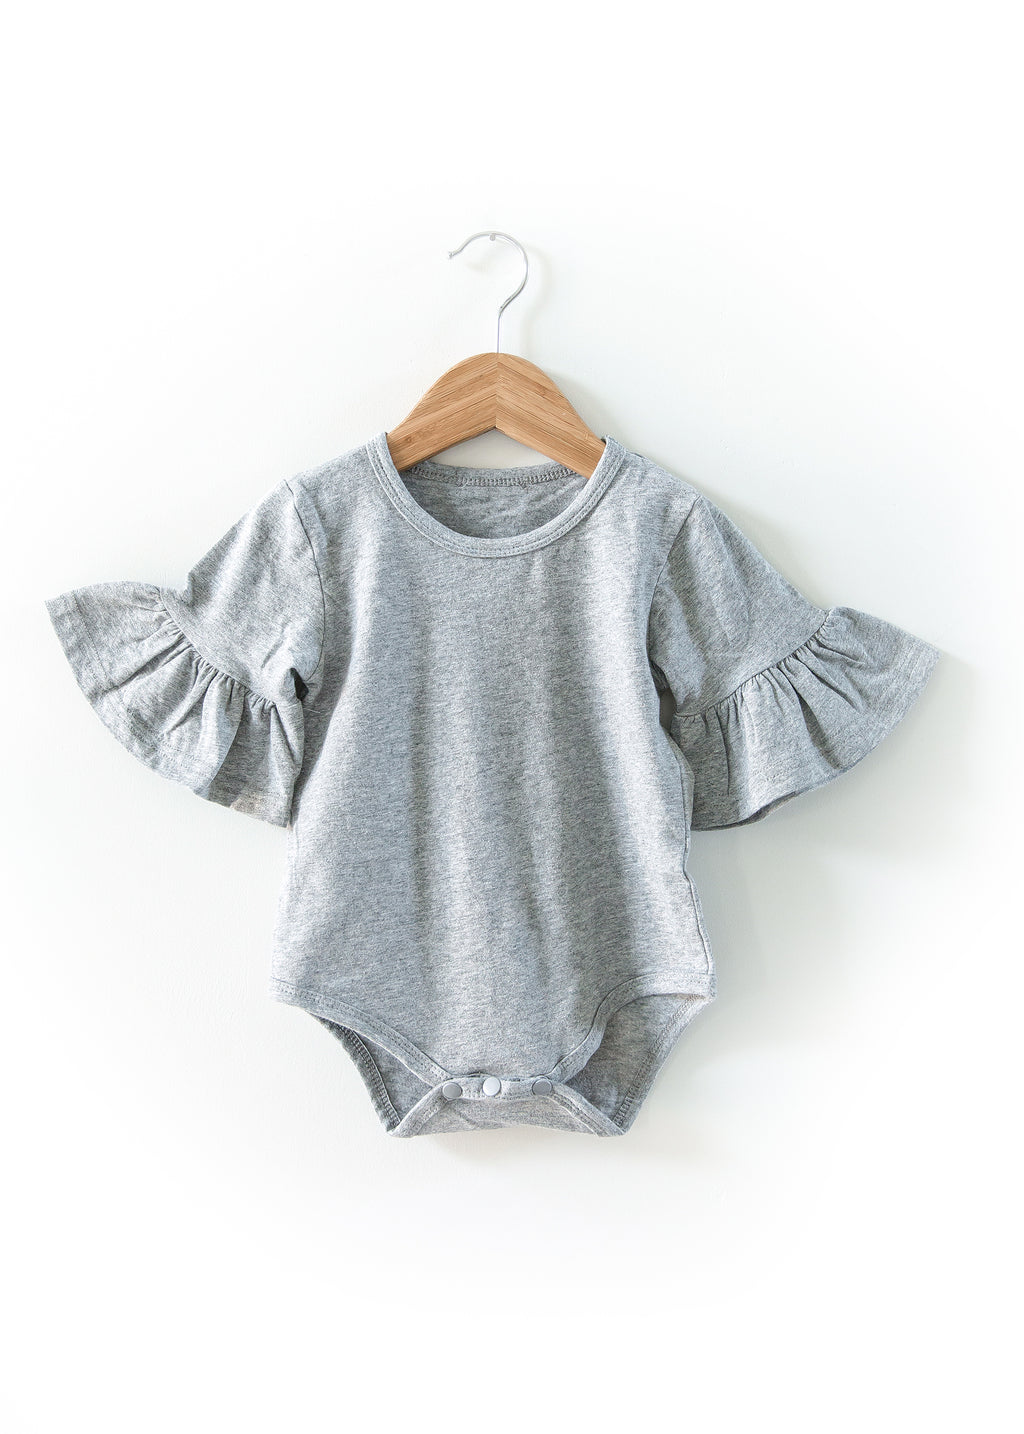 Annabelle Bodysuit in Gray - Reverie Threads